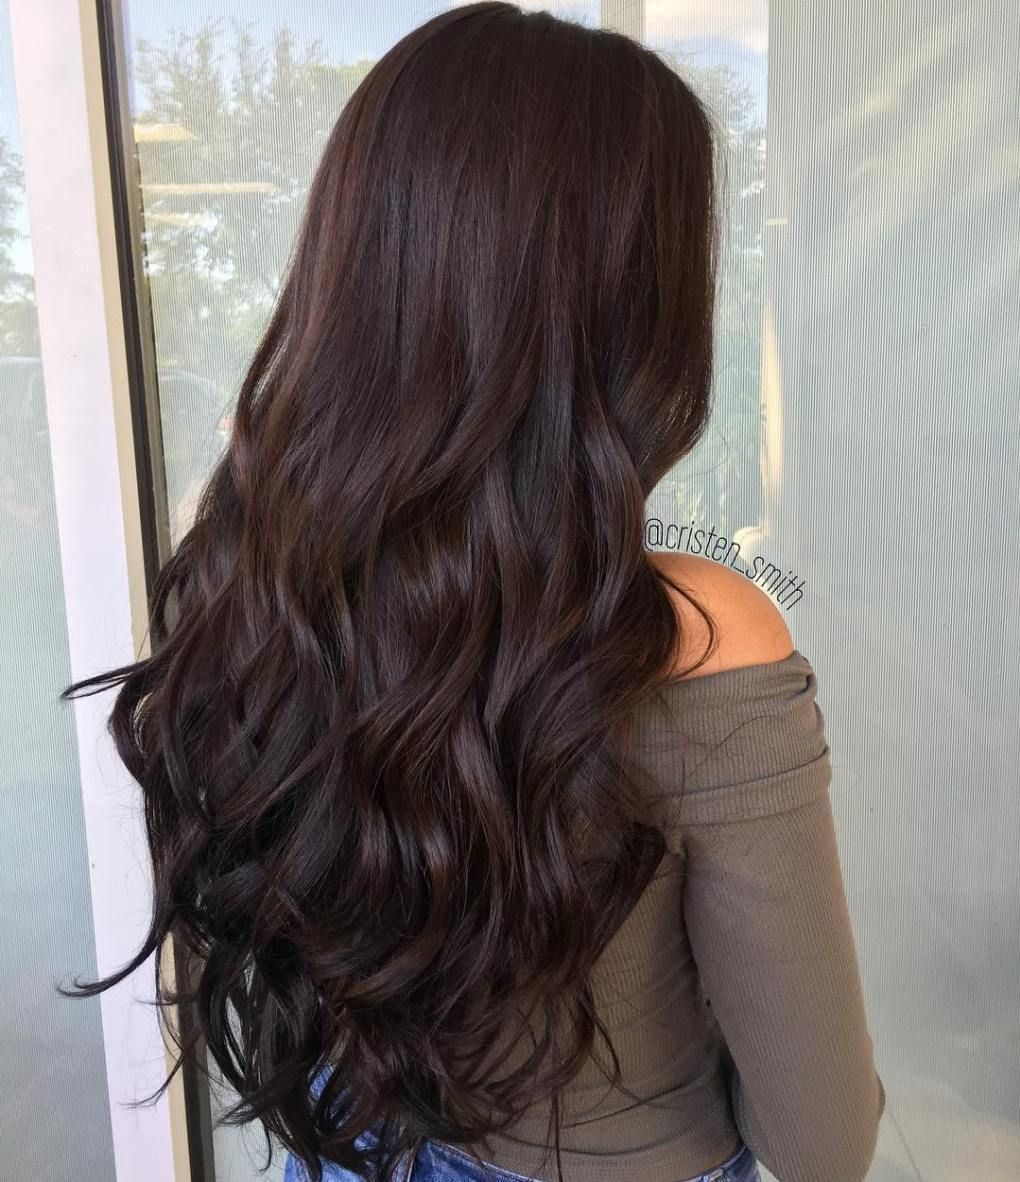 Curly brown hairstyle for long hair caramel highlights in